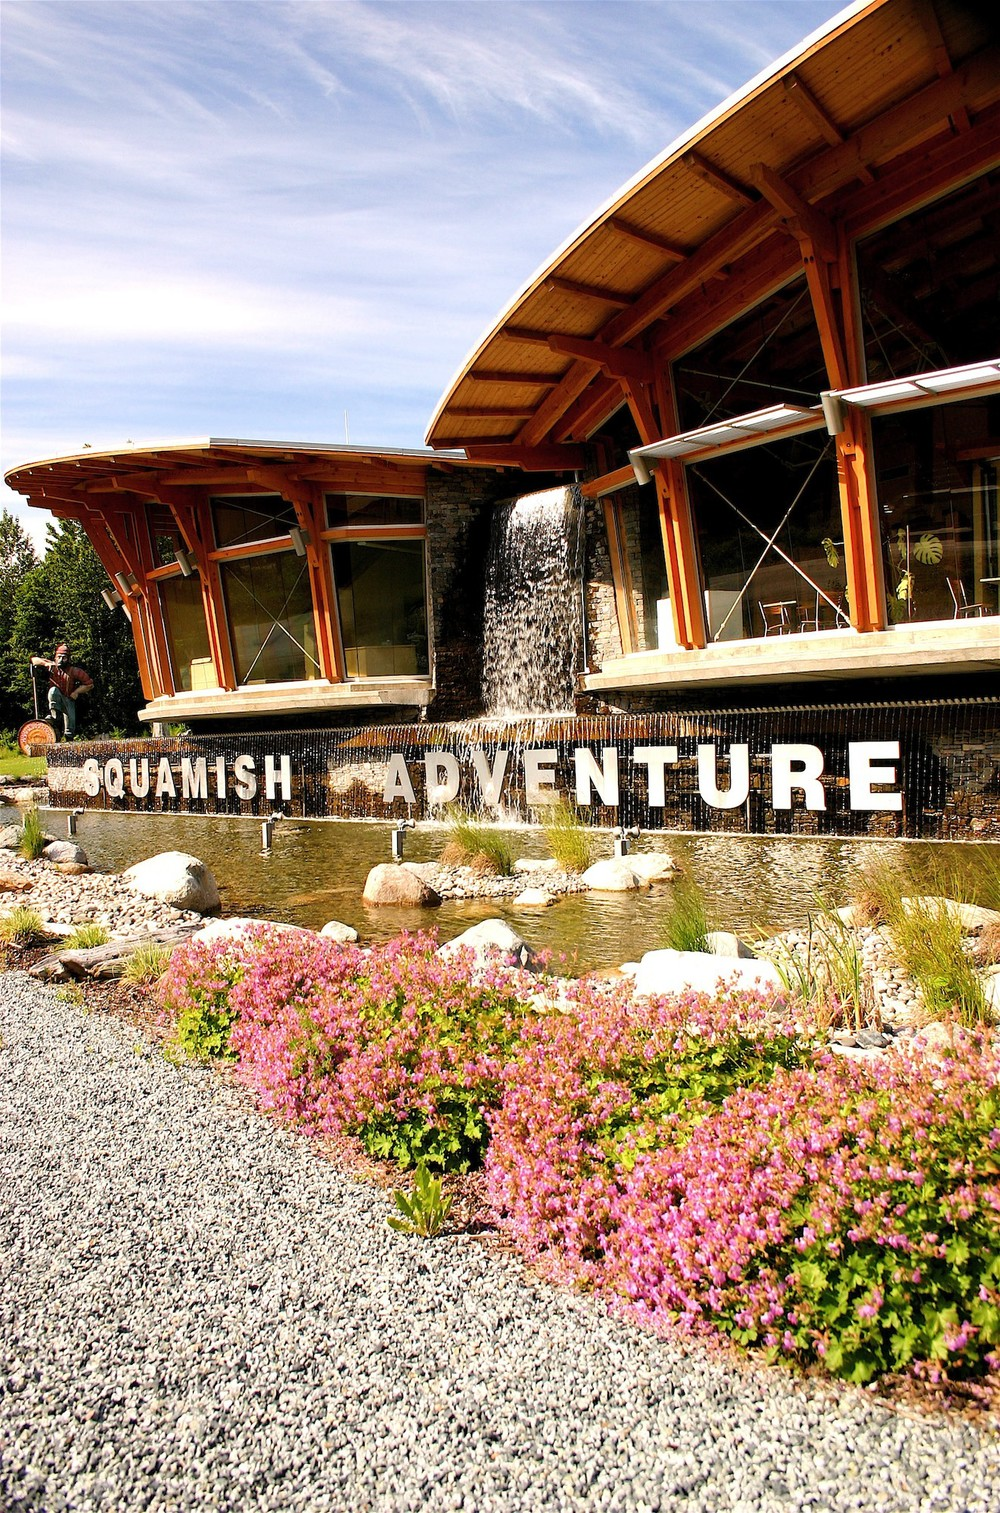 The Squamish Adventure Centre